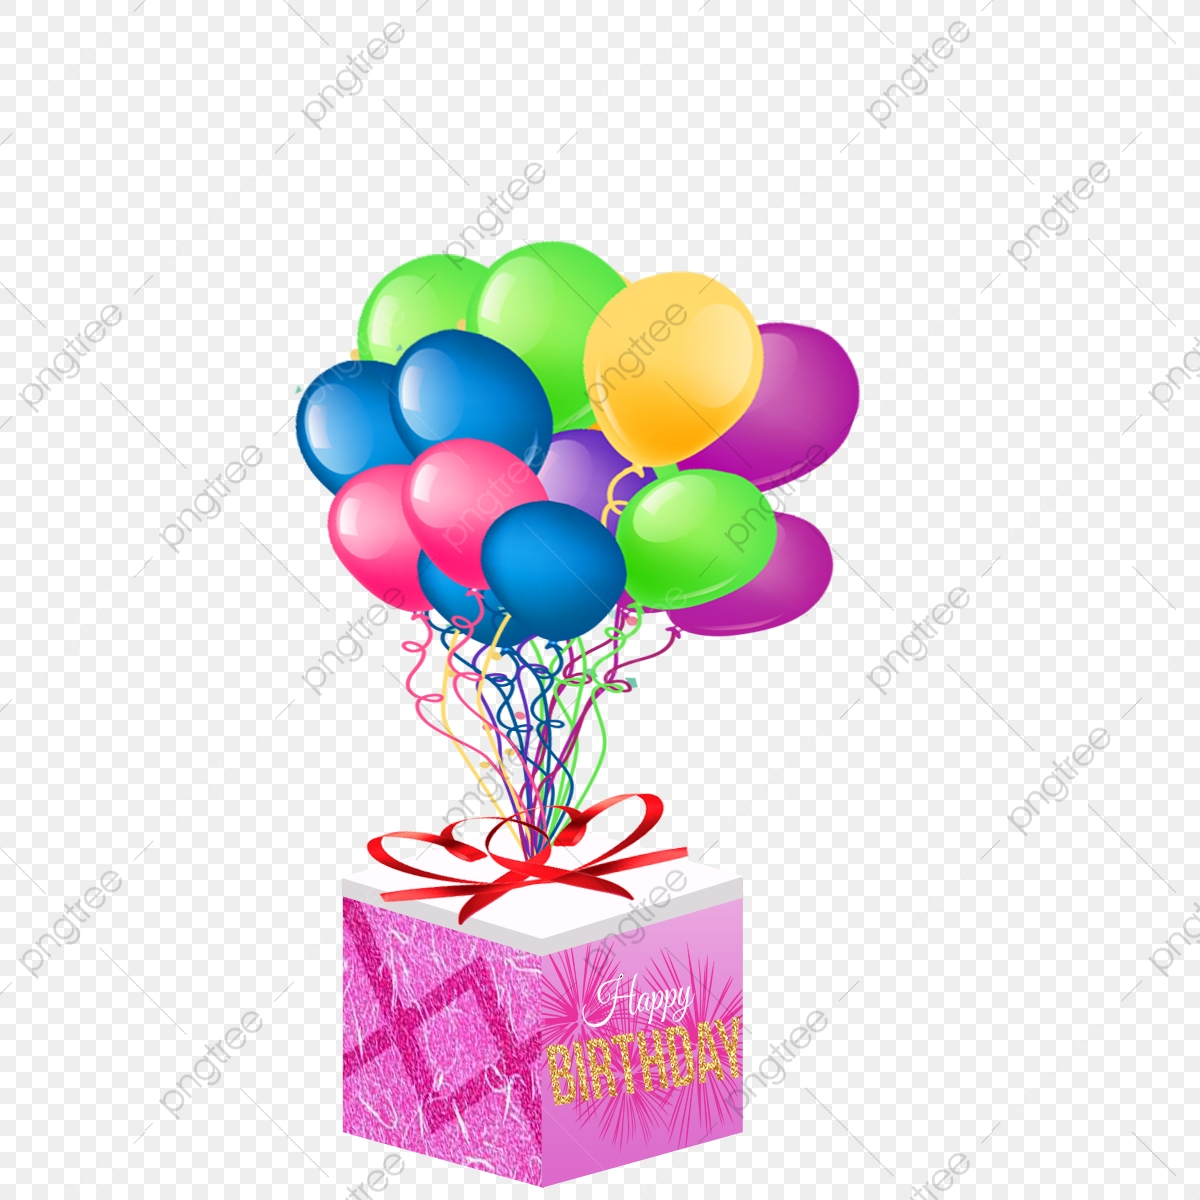 Birthday Gift Box Box Gift Png Transparent Clipart Image And Psd